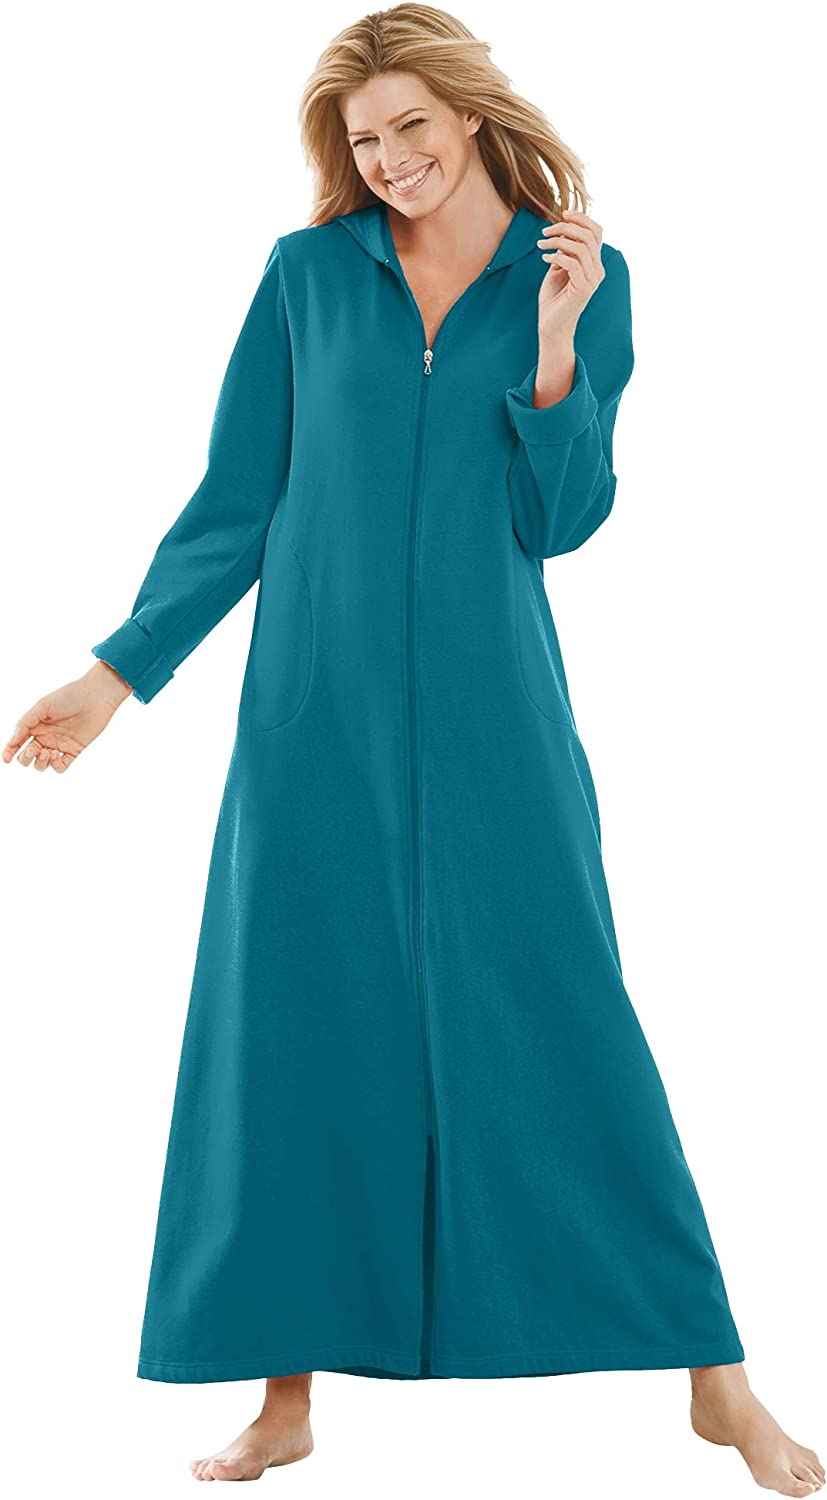 Dreams Co. Women's Plus Fleece Hooded Size Popular product Sale special price Robe